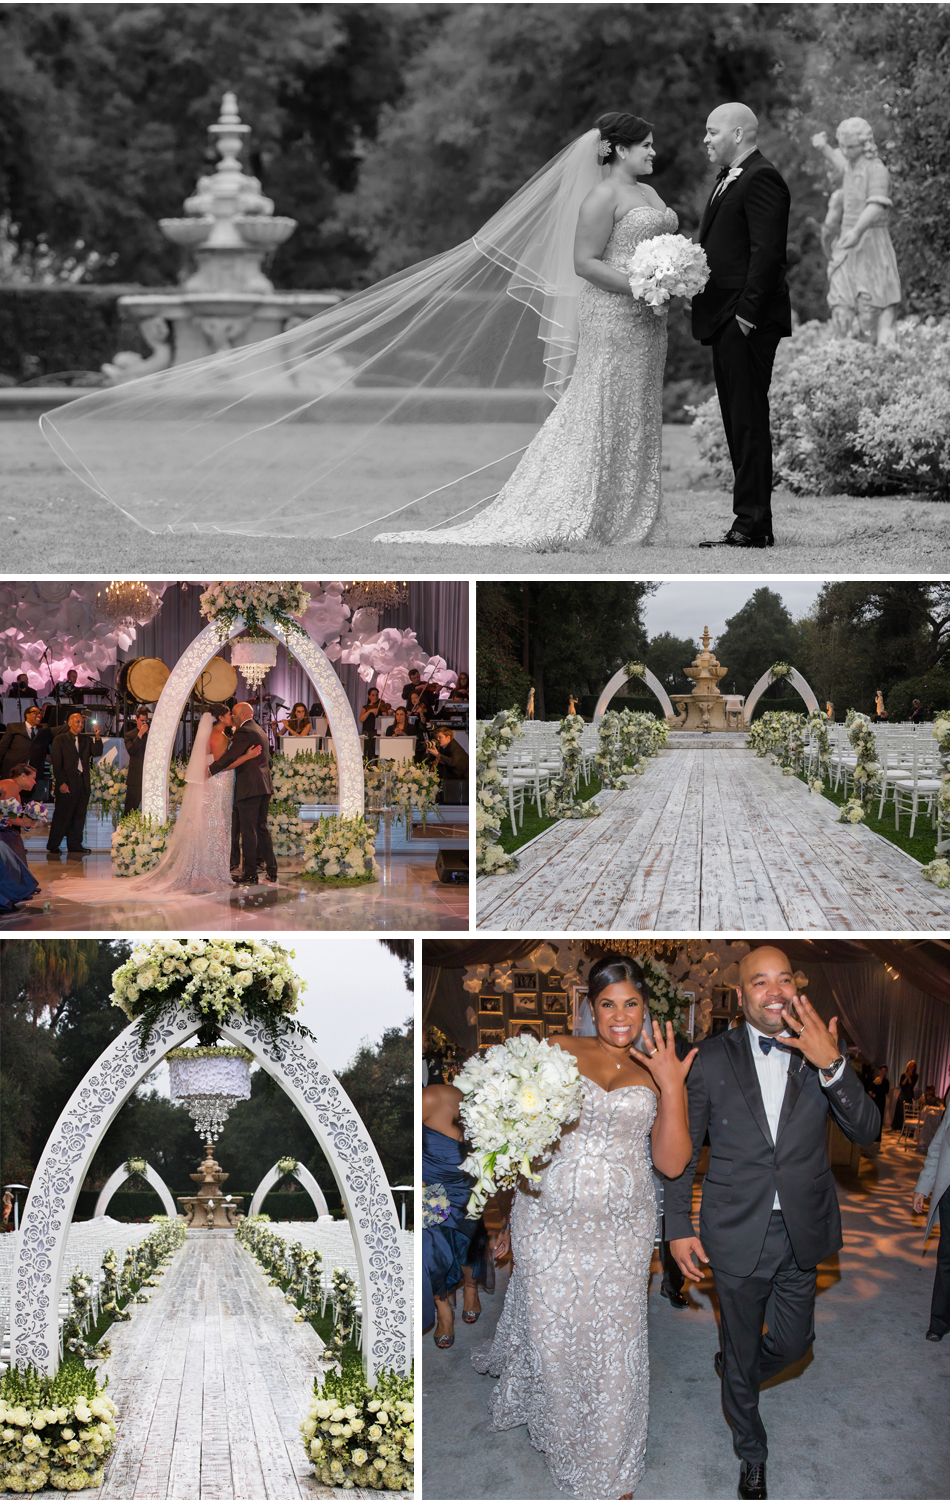 internationaleventcompany.com | International Event Company Los Angeles Wedding Planner and Designer | Weddings at The Huntington Library | Luxury Event Planners in Southern California _ (2).jpg